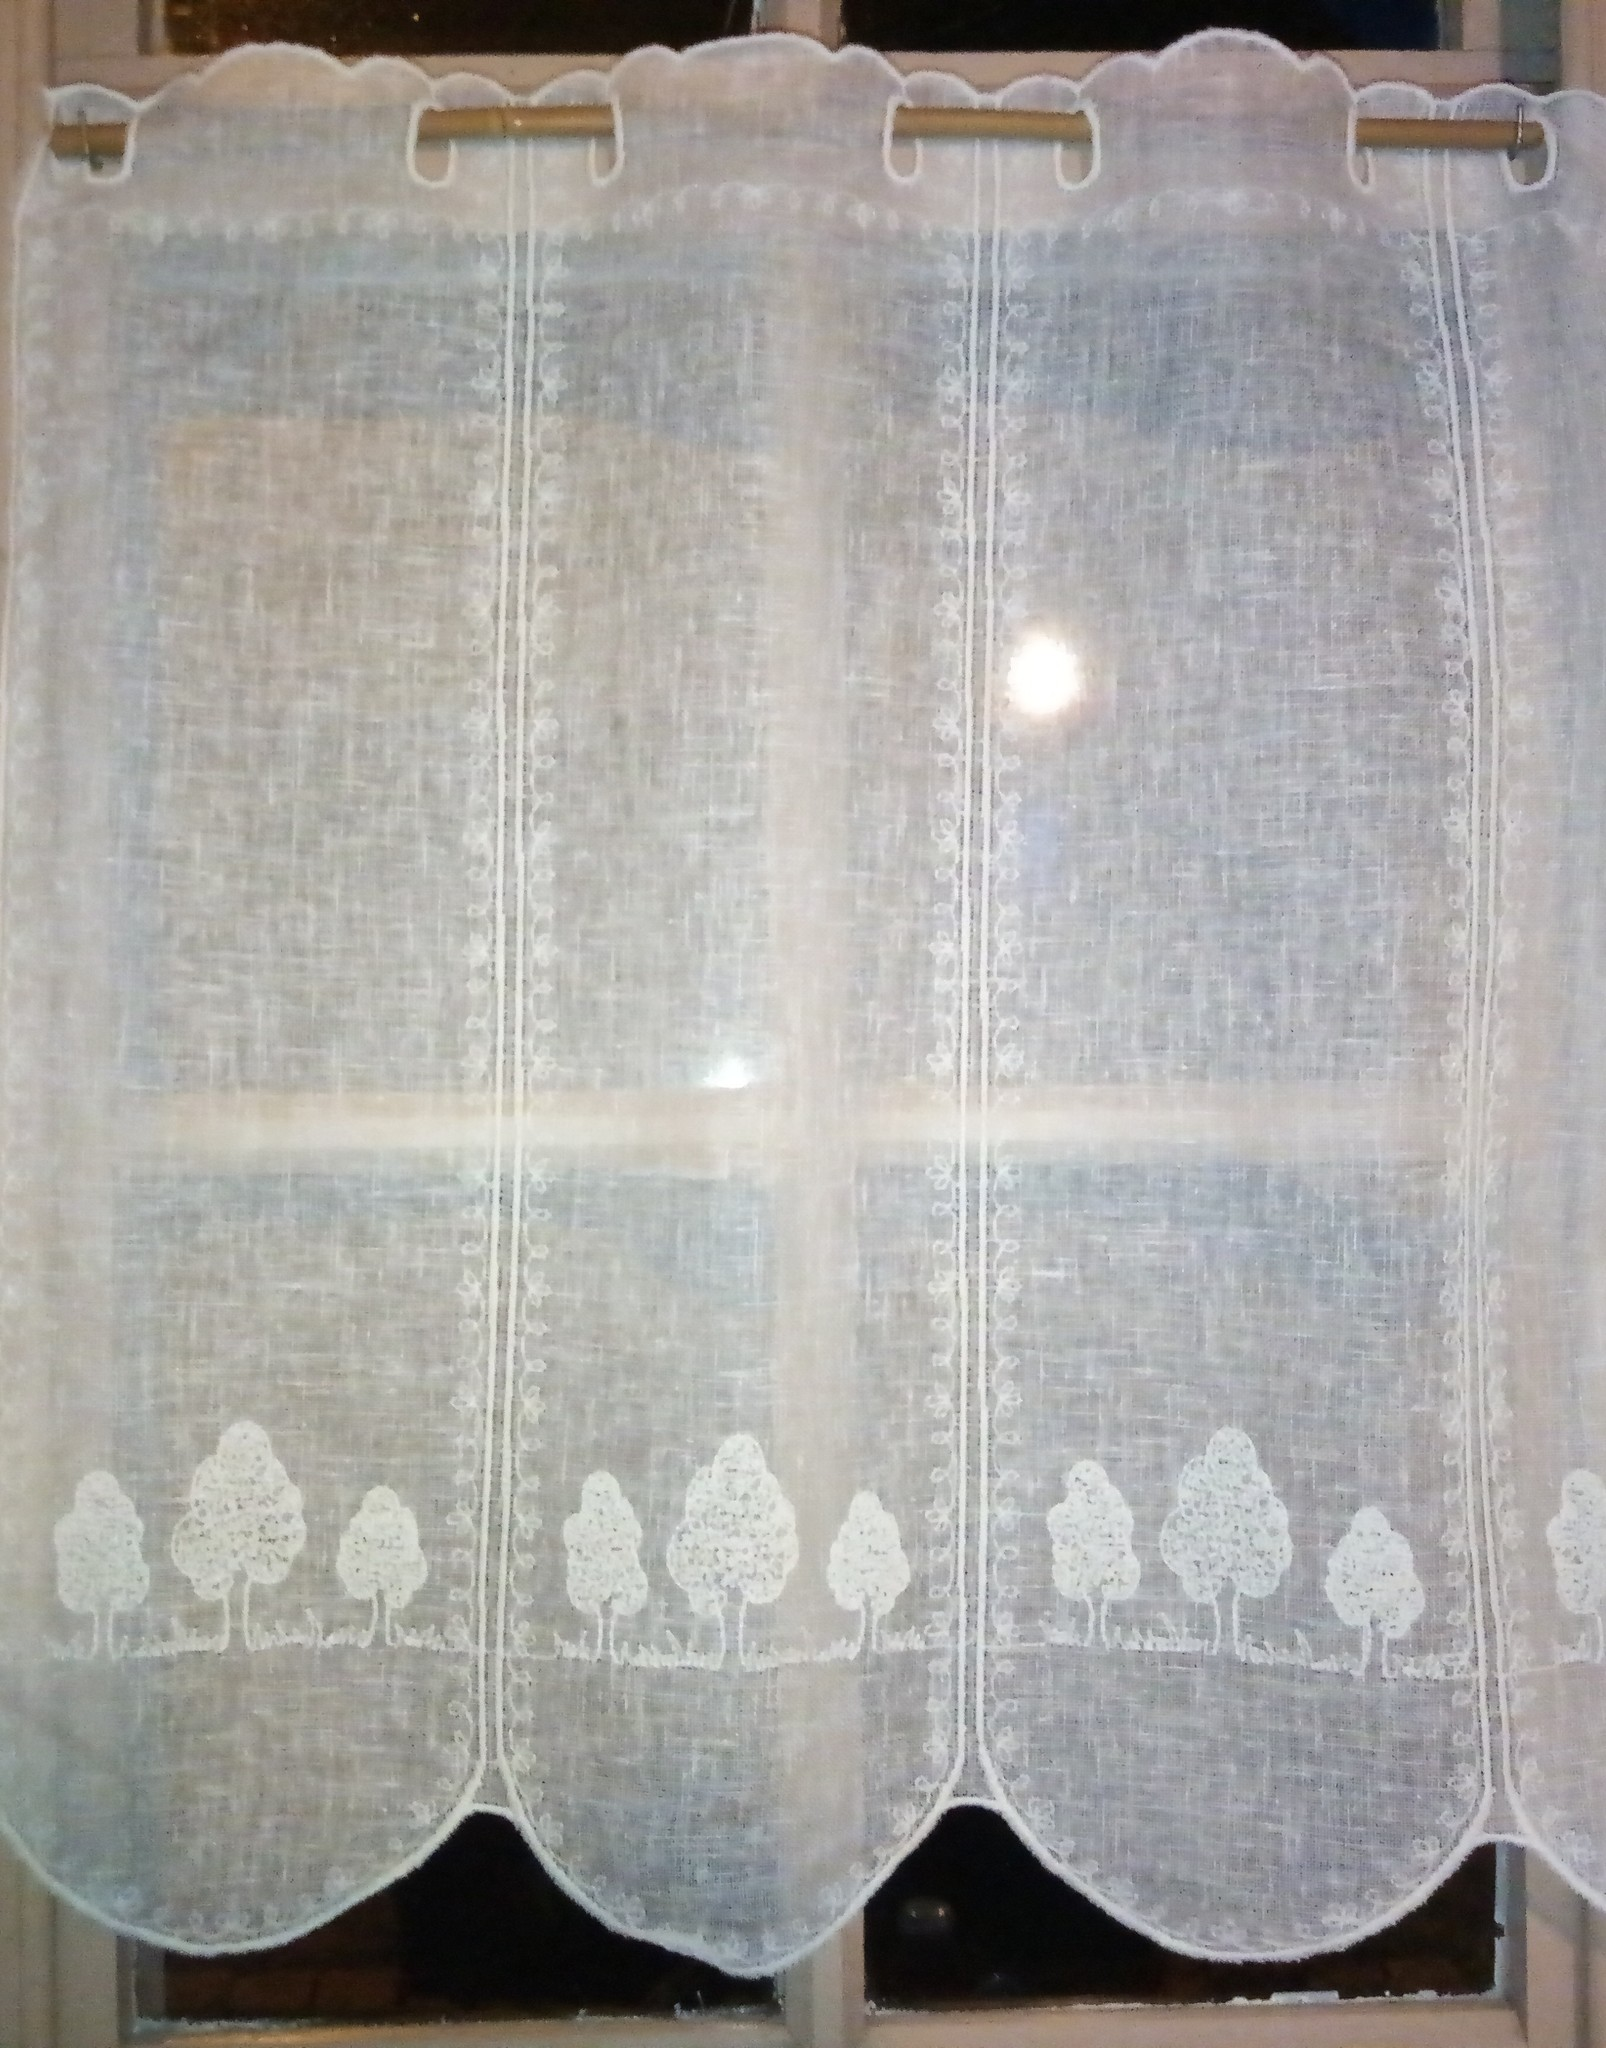 curtain with embroidered trees 60 cm high